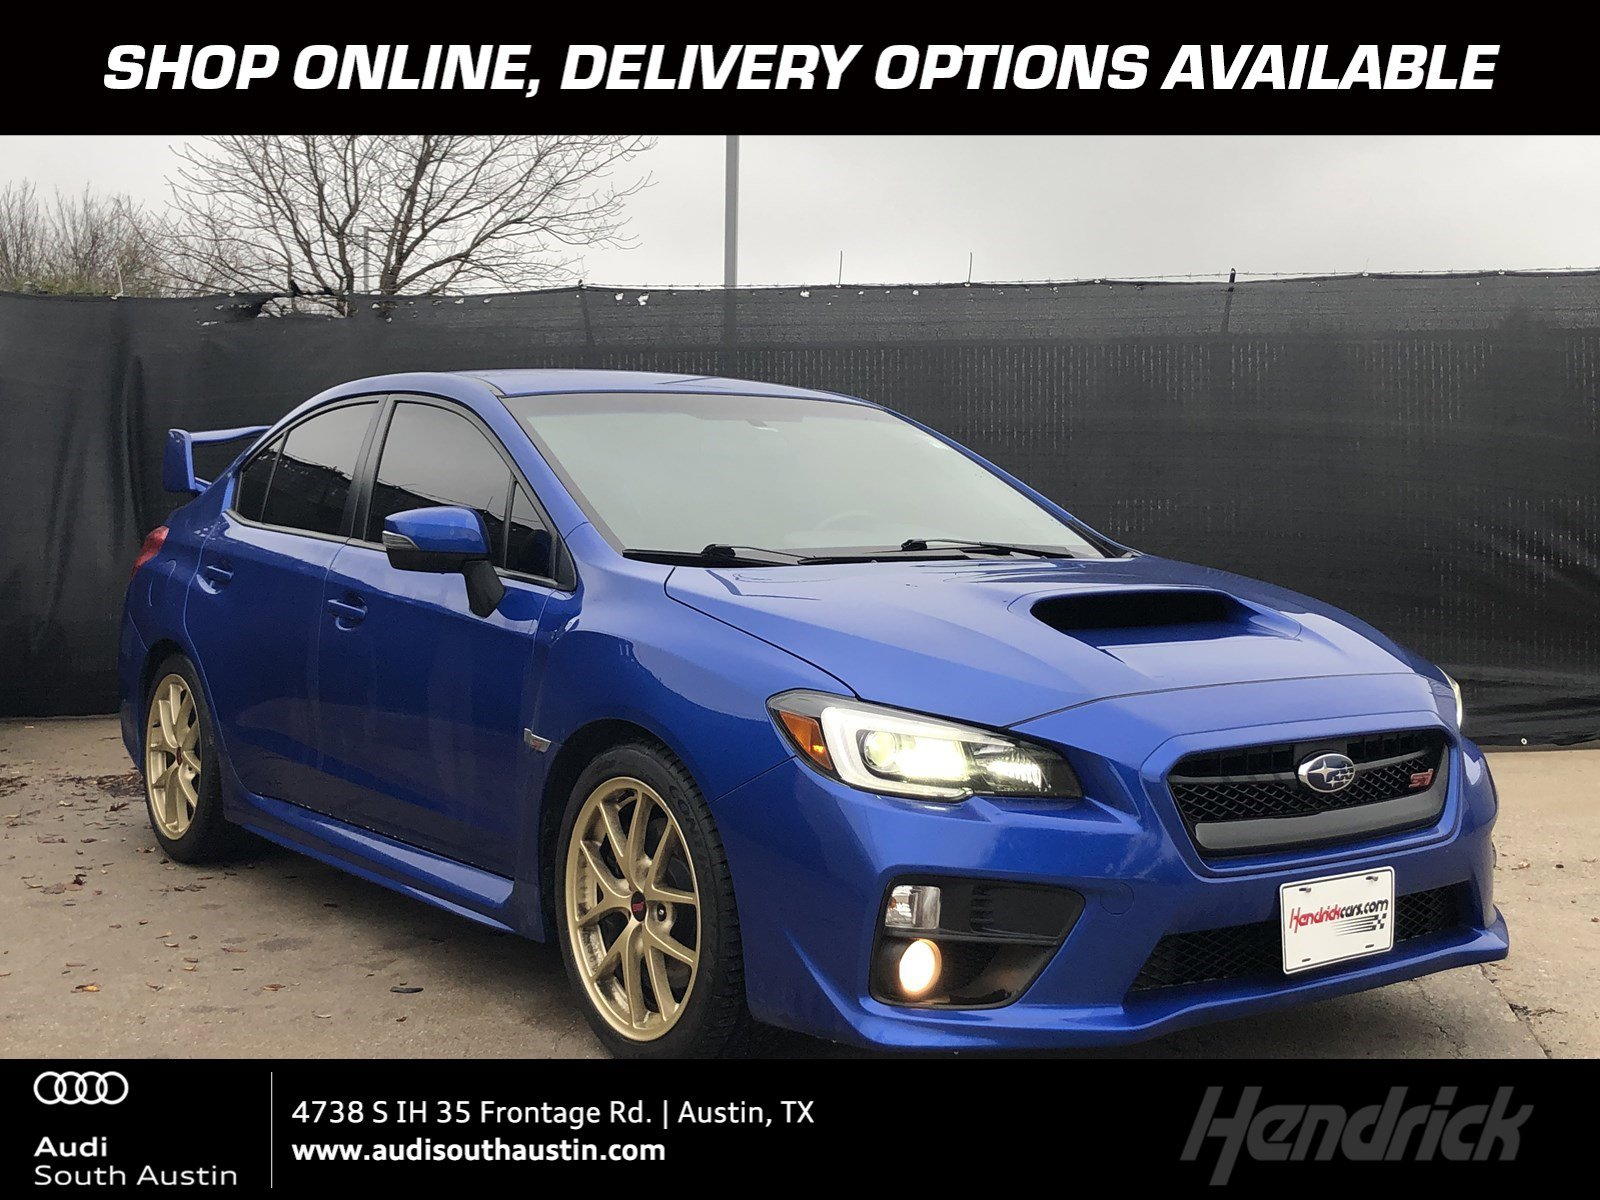 2015 Subaru WRX STI Launch Edition image